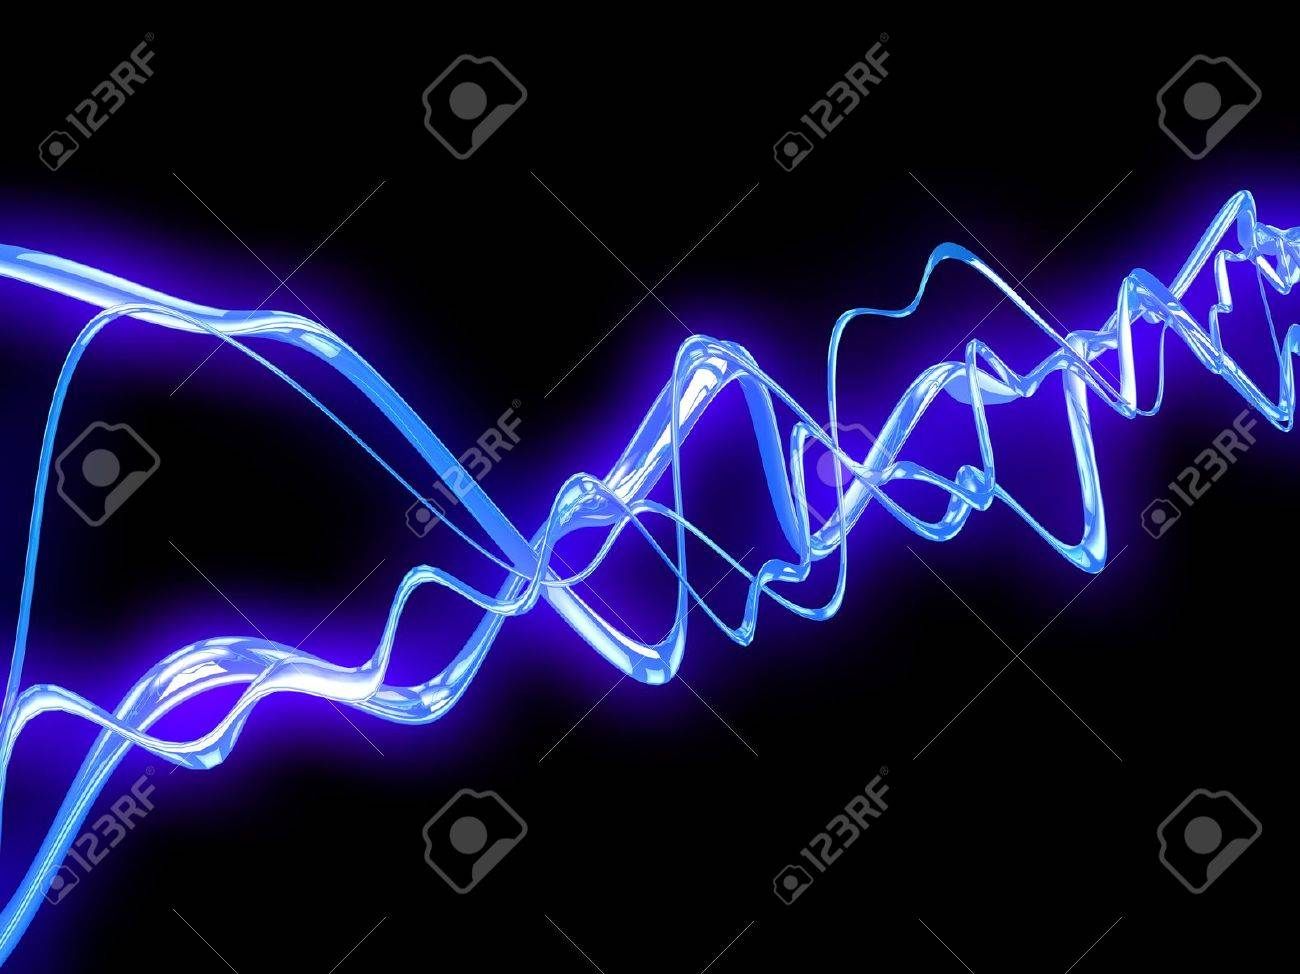 3d illustration of electric waves over black background Stock Photo - 18685959